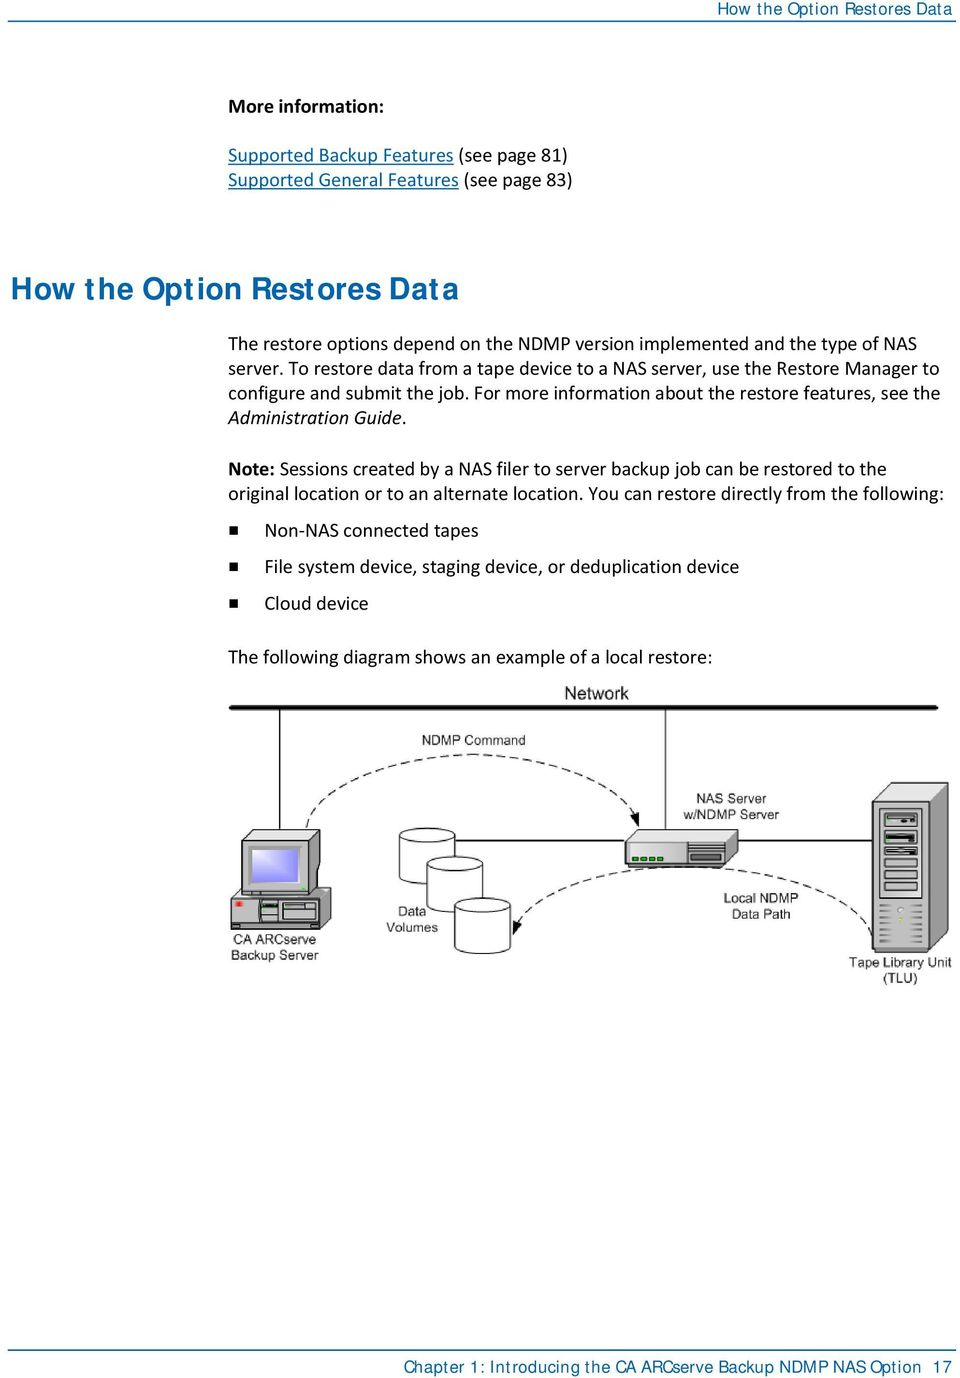 For more information about the restore features, see the Administration Guide.